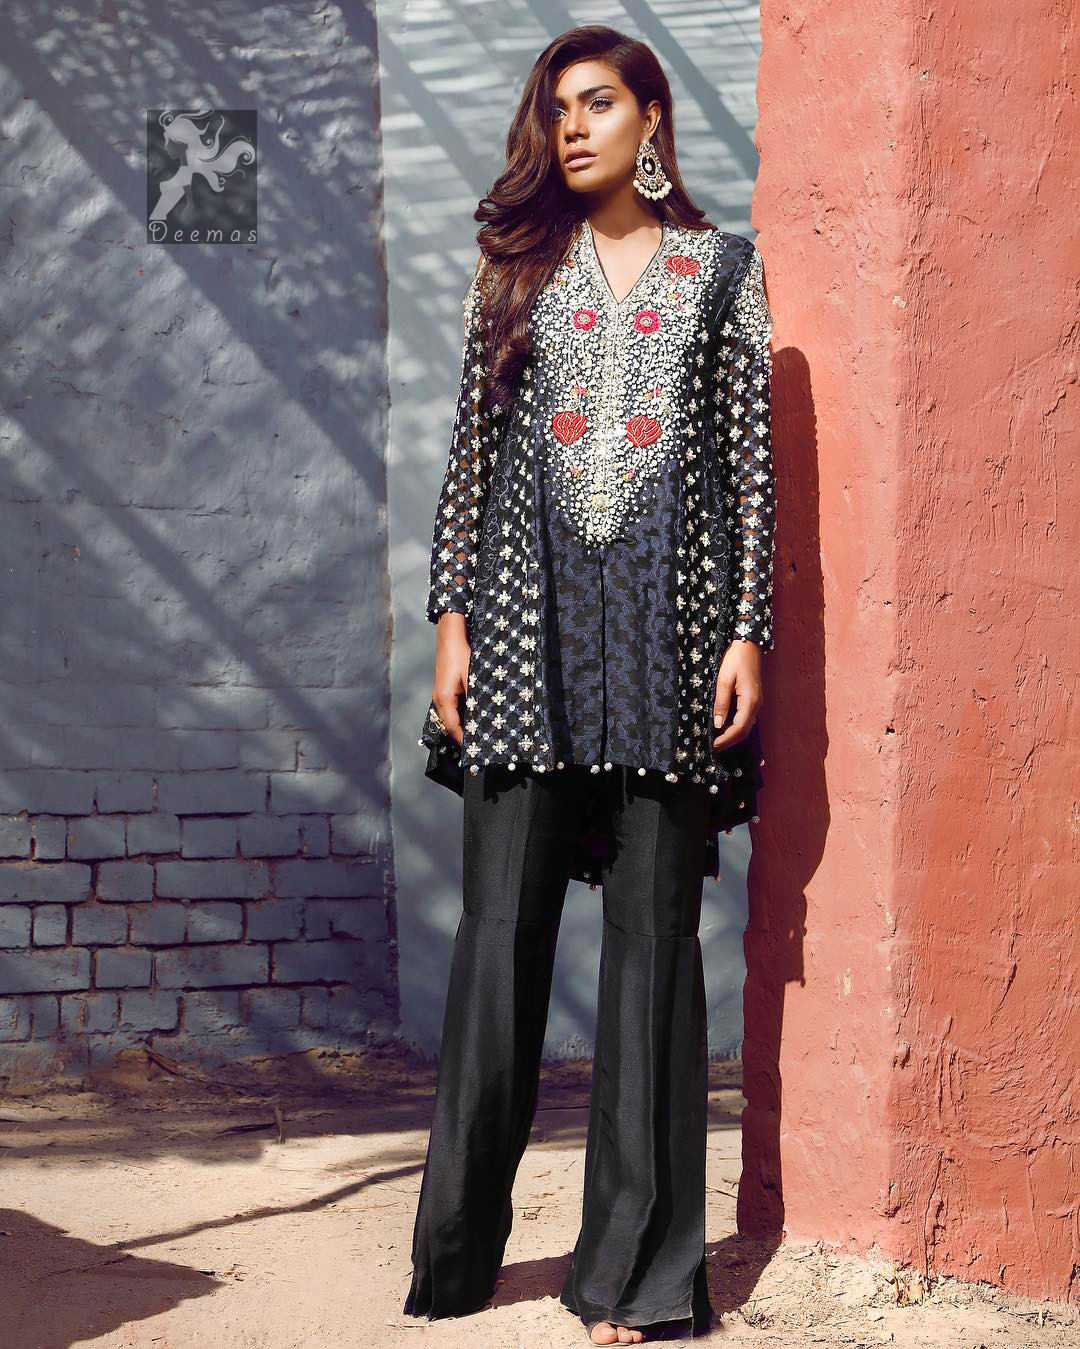 Black peplum made with pure banarsi jamawar chiffon. Peplum having multiple panels of different banarsi patterns. White and silver embellishment on neckline, side panels and sleeves.